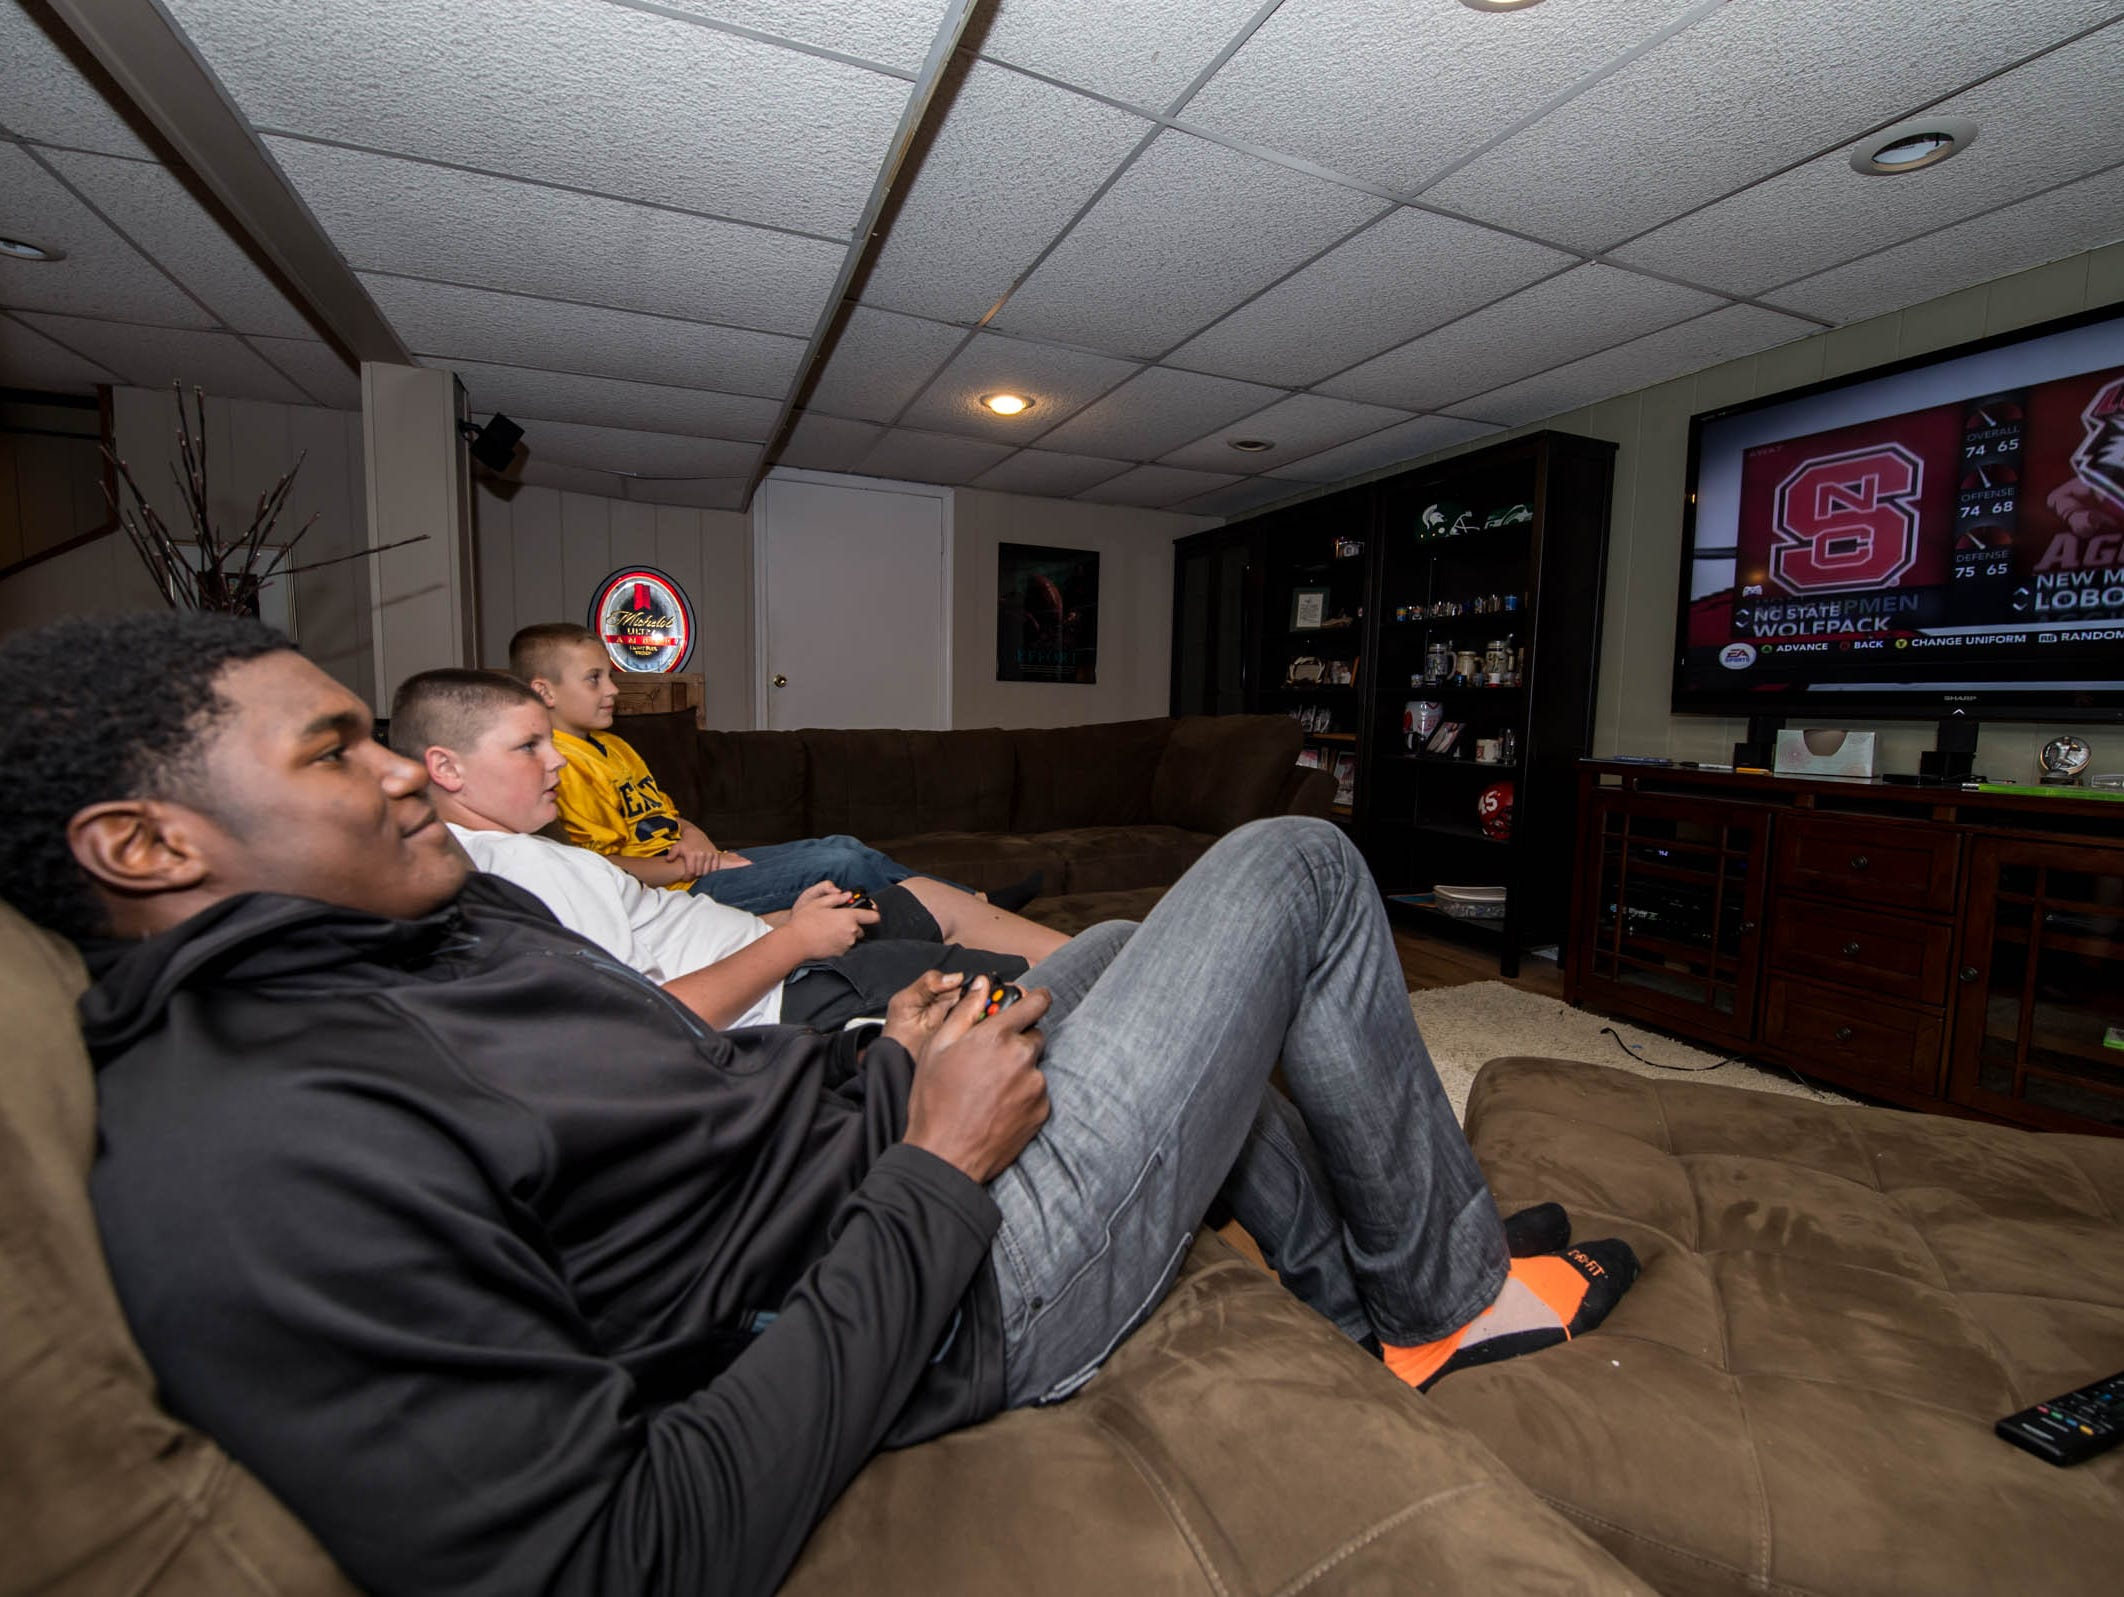 BCC senior Brandon Randle playing video games with his 'little brothers' Kyler and Kayden Randle